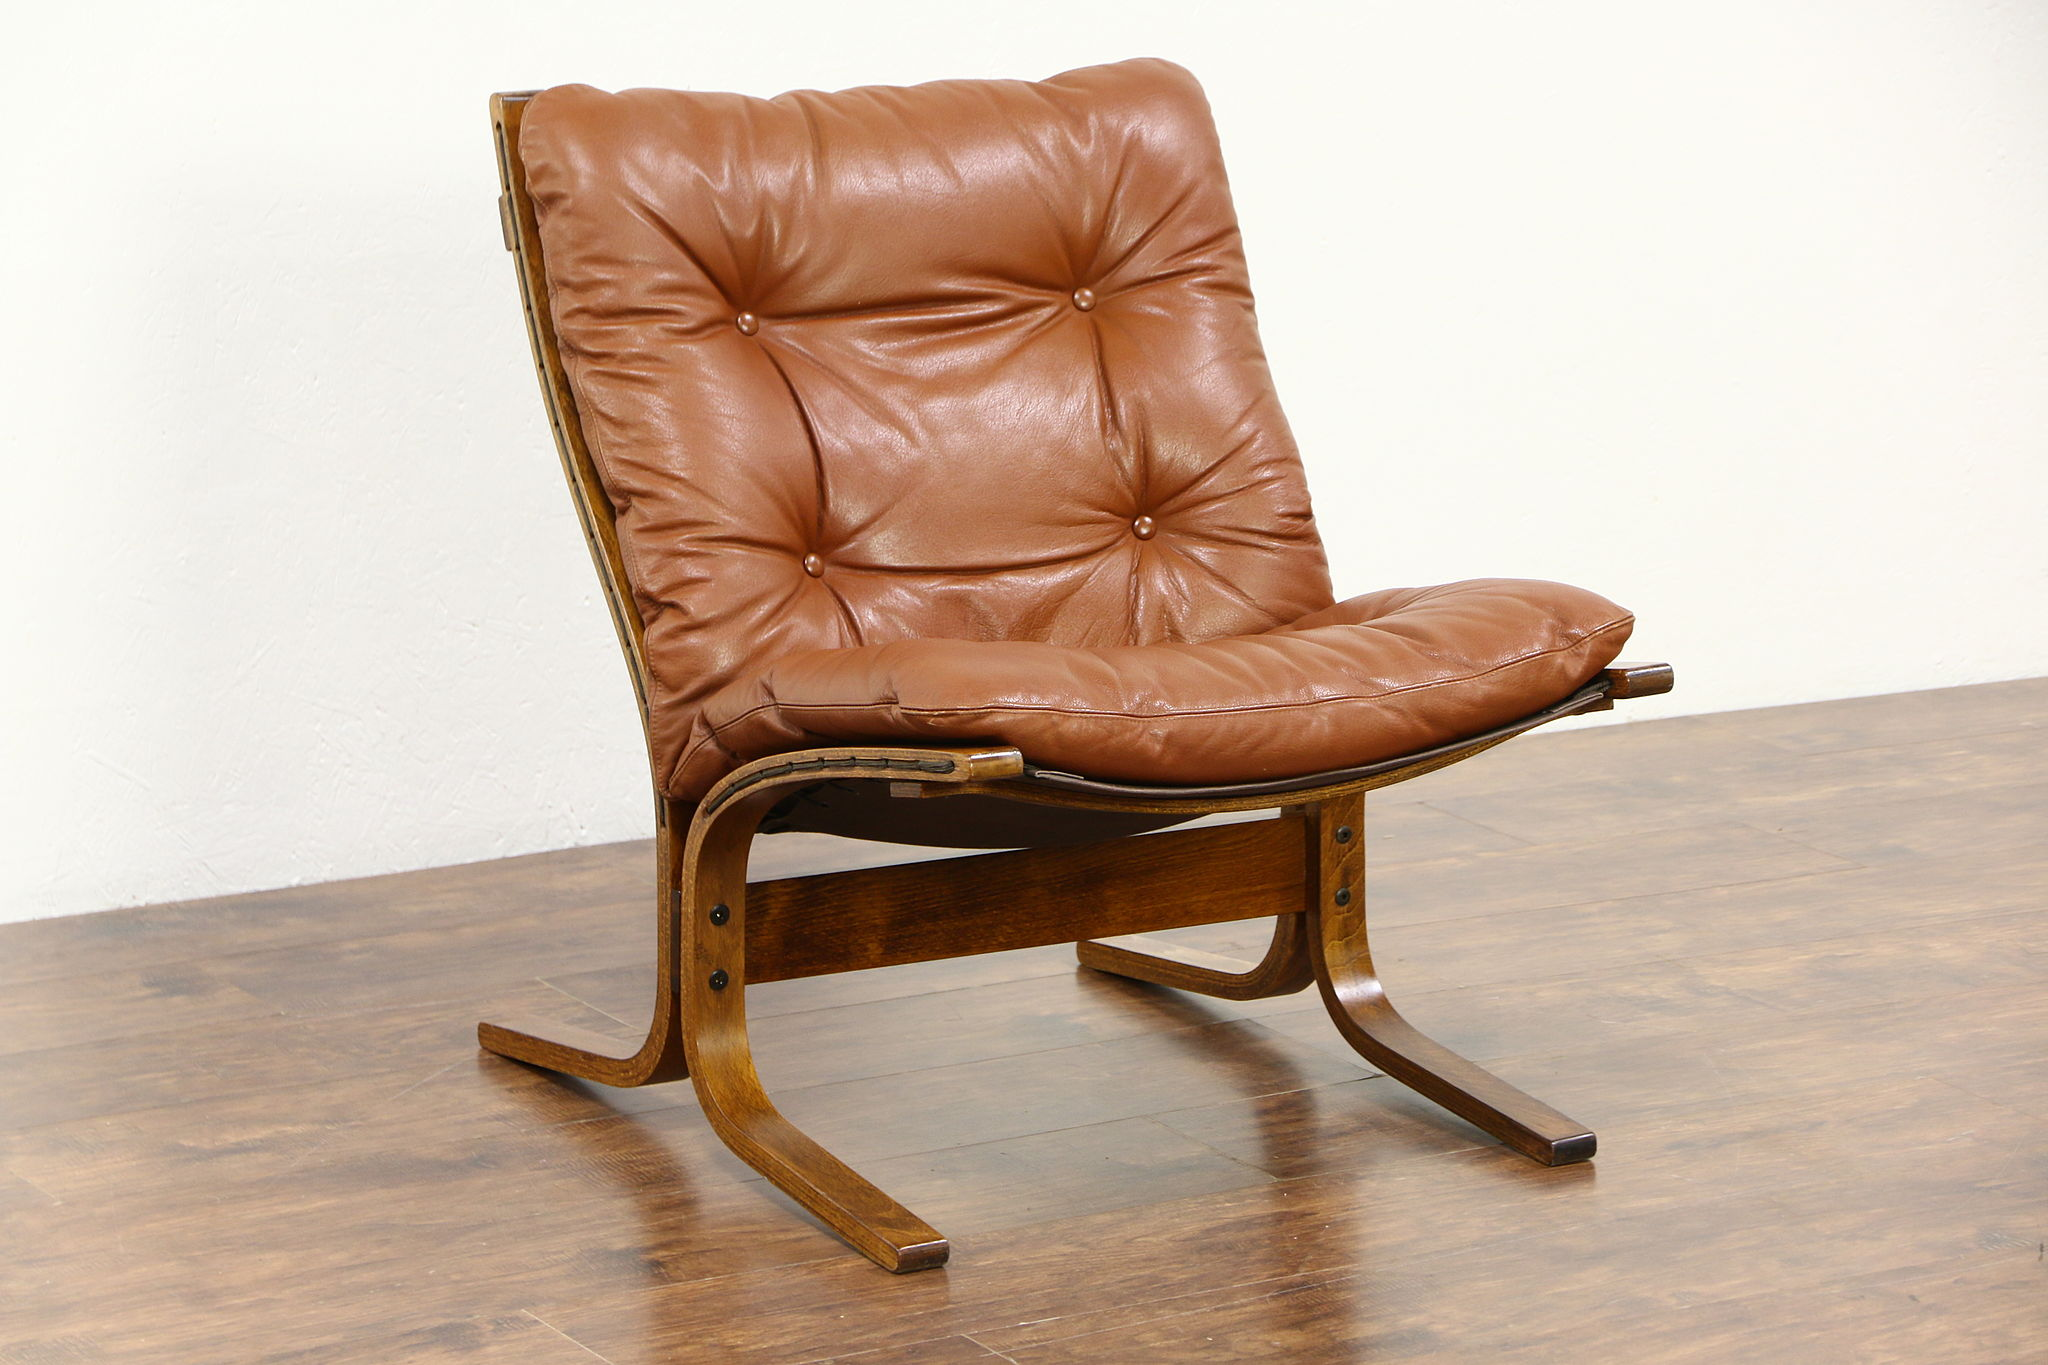 Midcentury Modern 1960 Vintage Tufted Leather Chair, Made In Norway ...